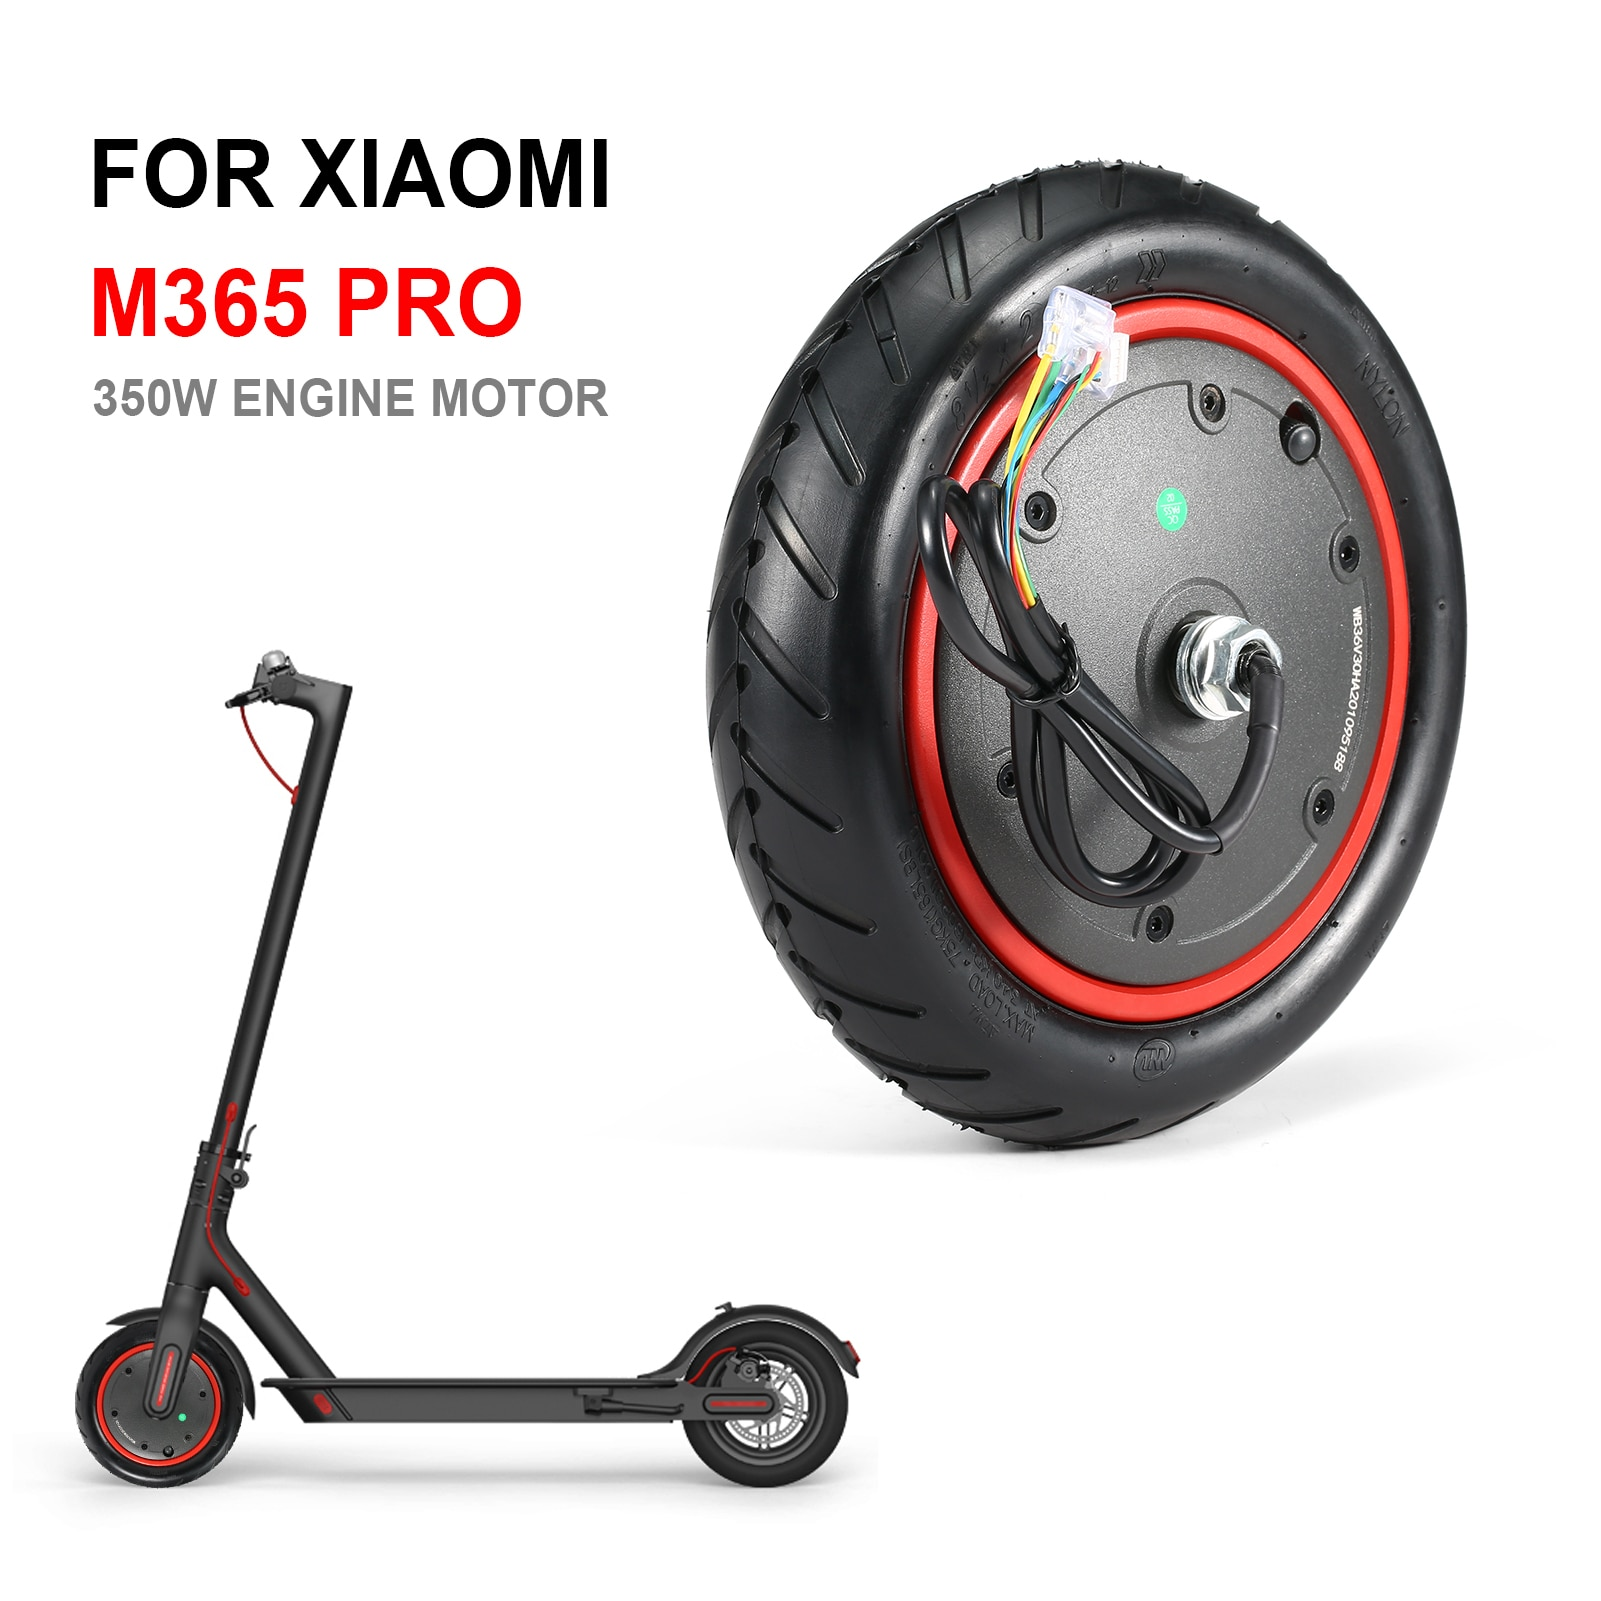 350W Wheel Engine Motor For Xiaomi M365 M365 Pro Electric Scooter 8.9 Inch Wheel Replacement Parts S